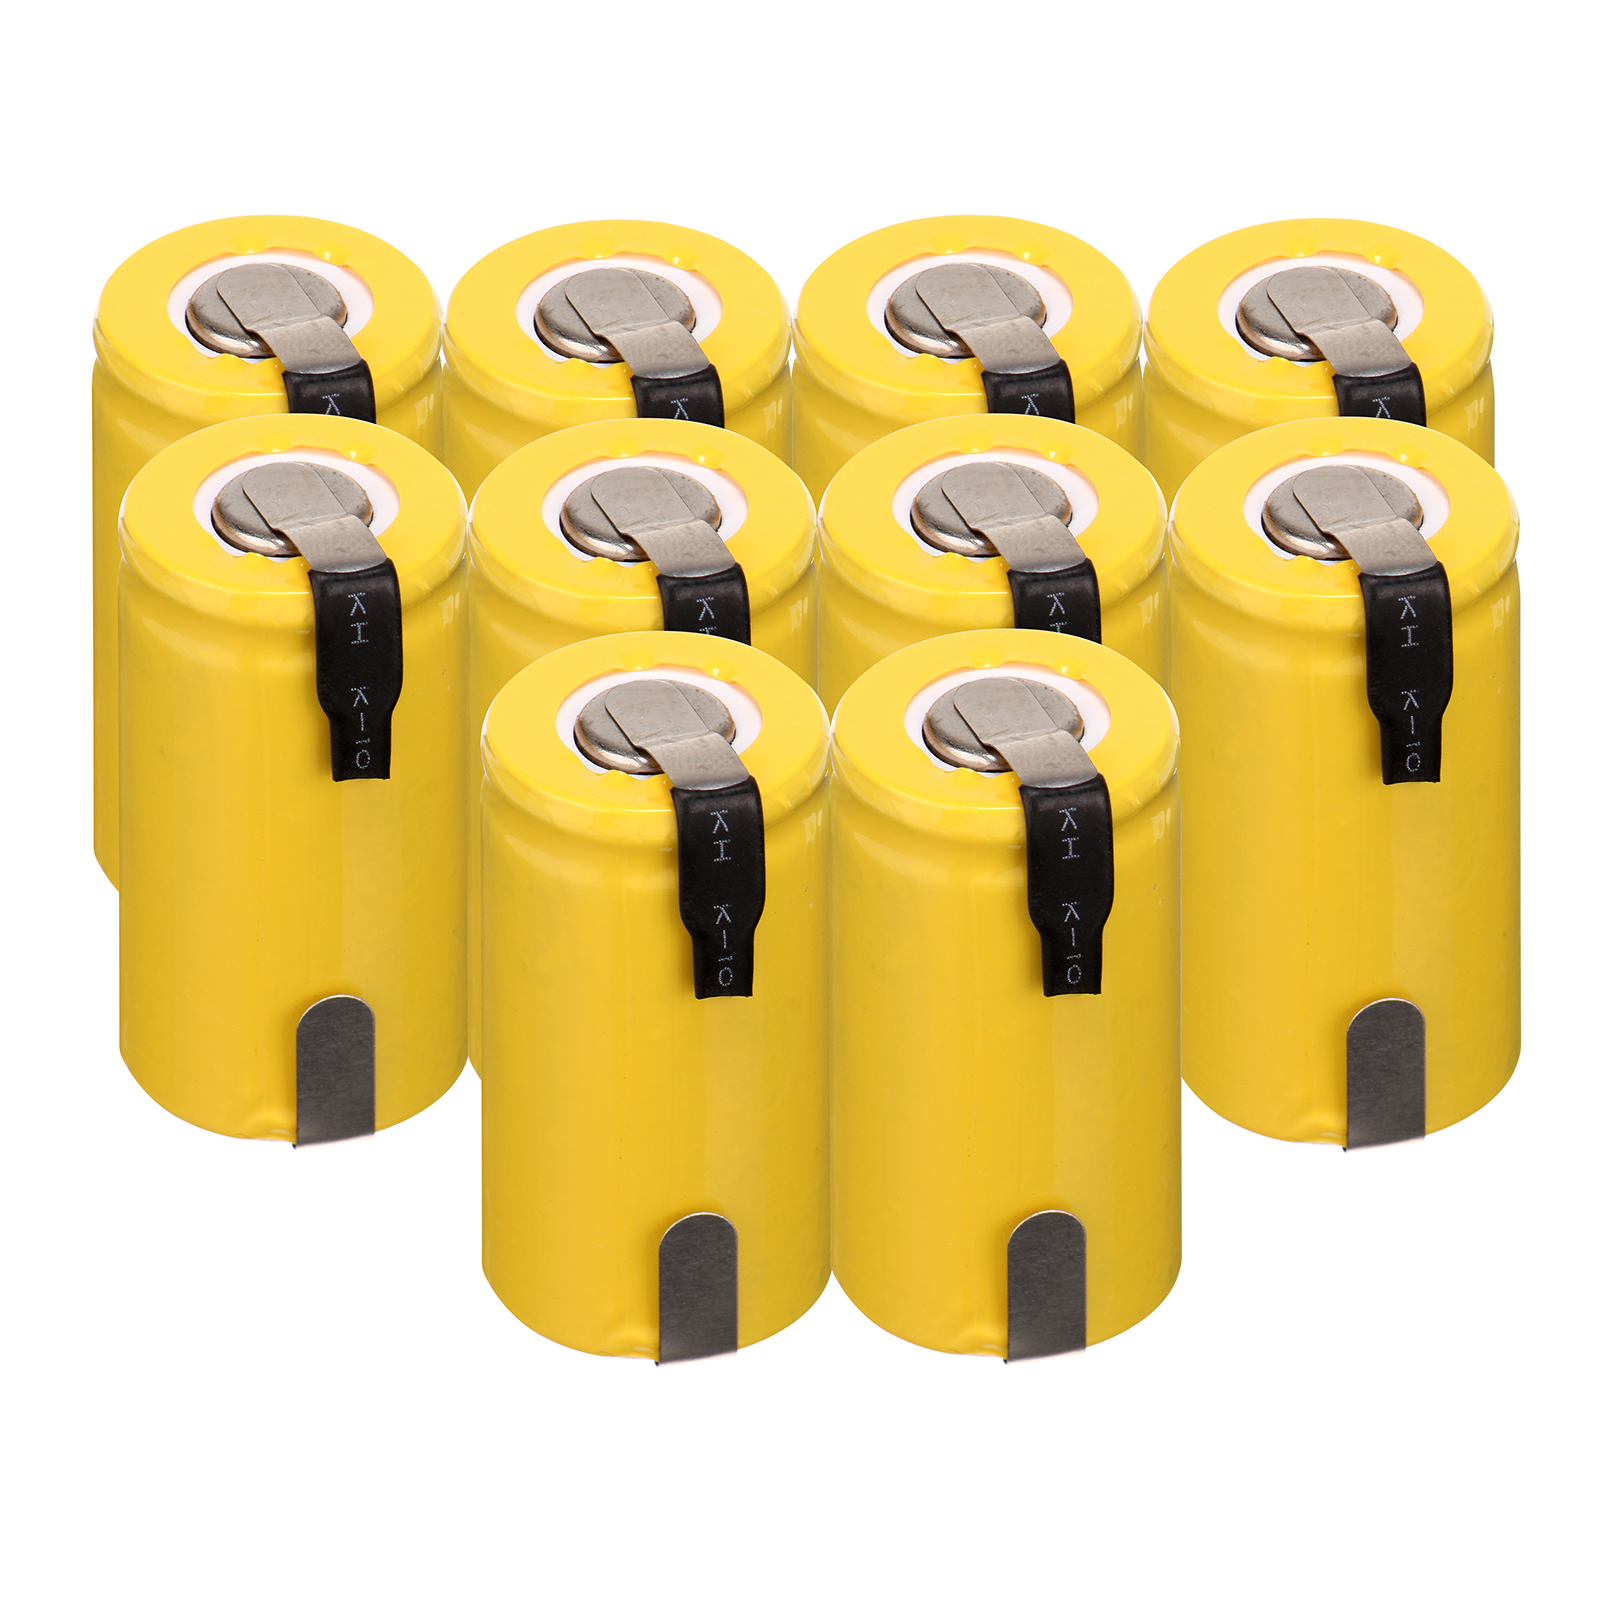 Russian Warehouse! 10pcs 1300mAh 1.2v rechargeable battery SC <font><b>ni</b></font>-<font><b>cd</b></font> nicd 1.2v battery <font><b>1.2</b></font> <font><b>v</b></font> battery <font><b>ni</b></font> <font><b>cd</b></font> image